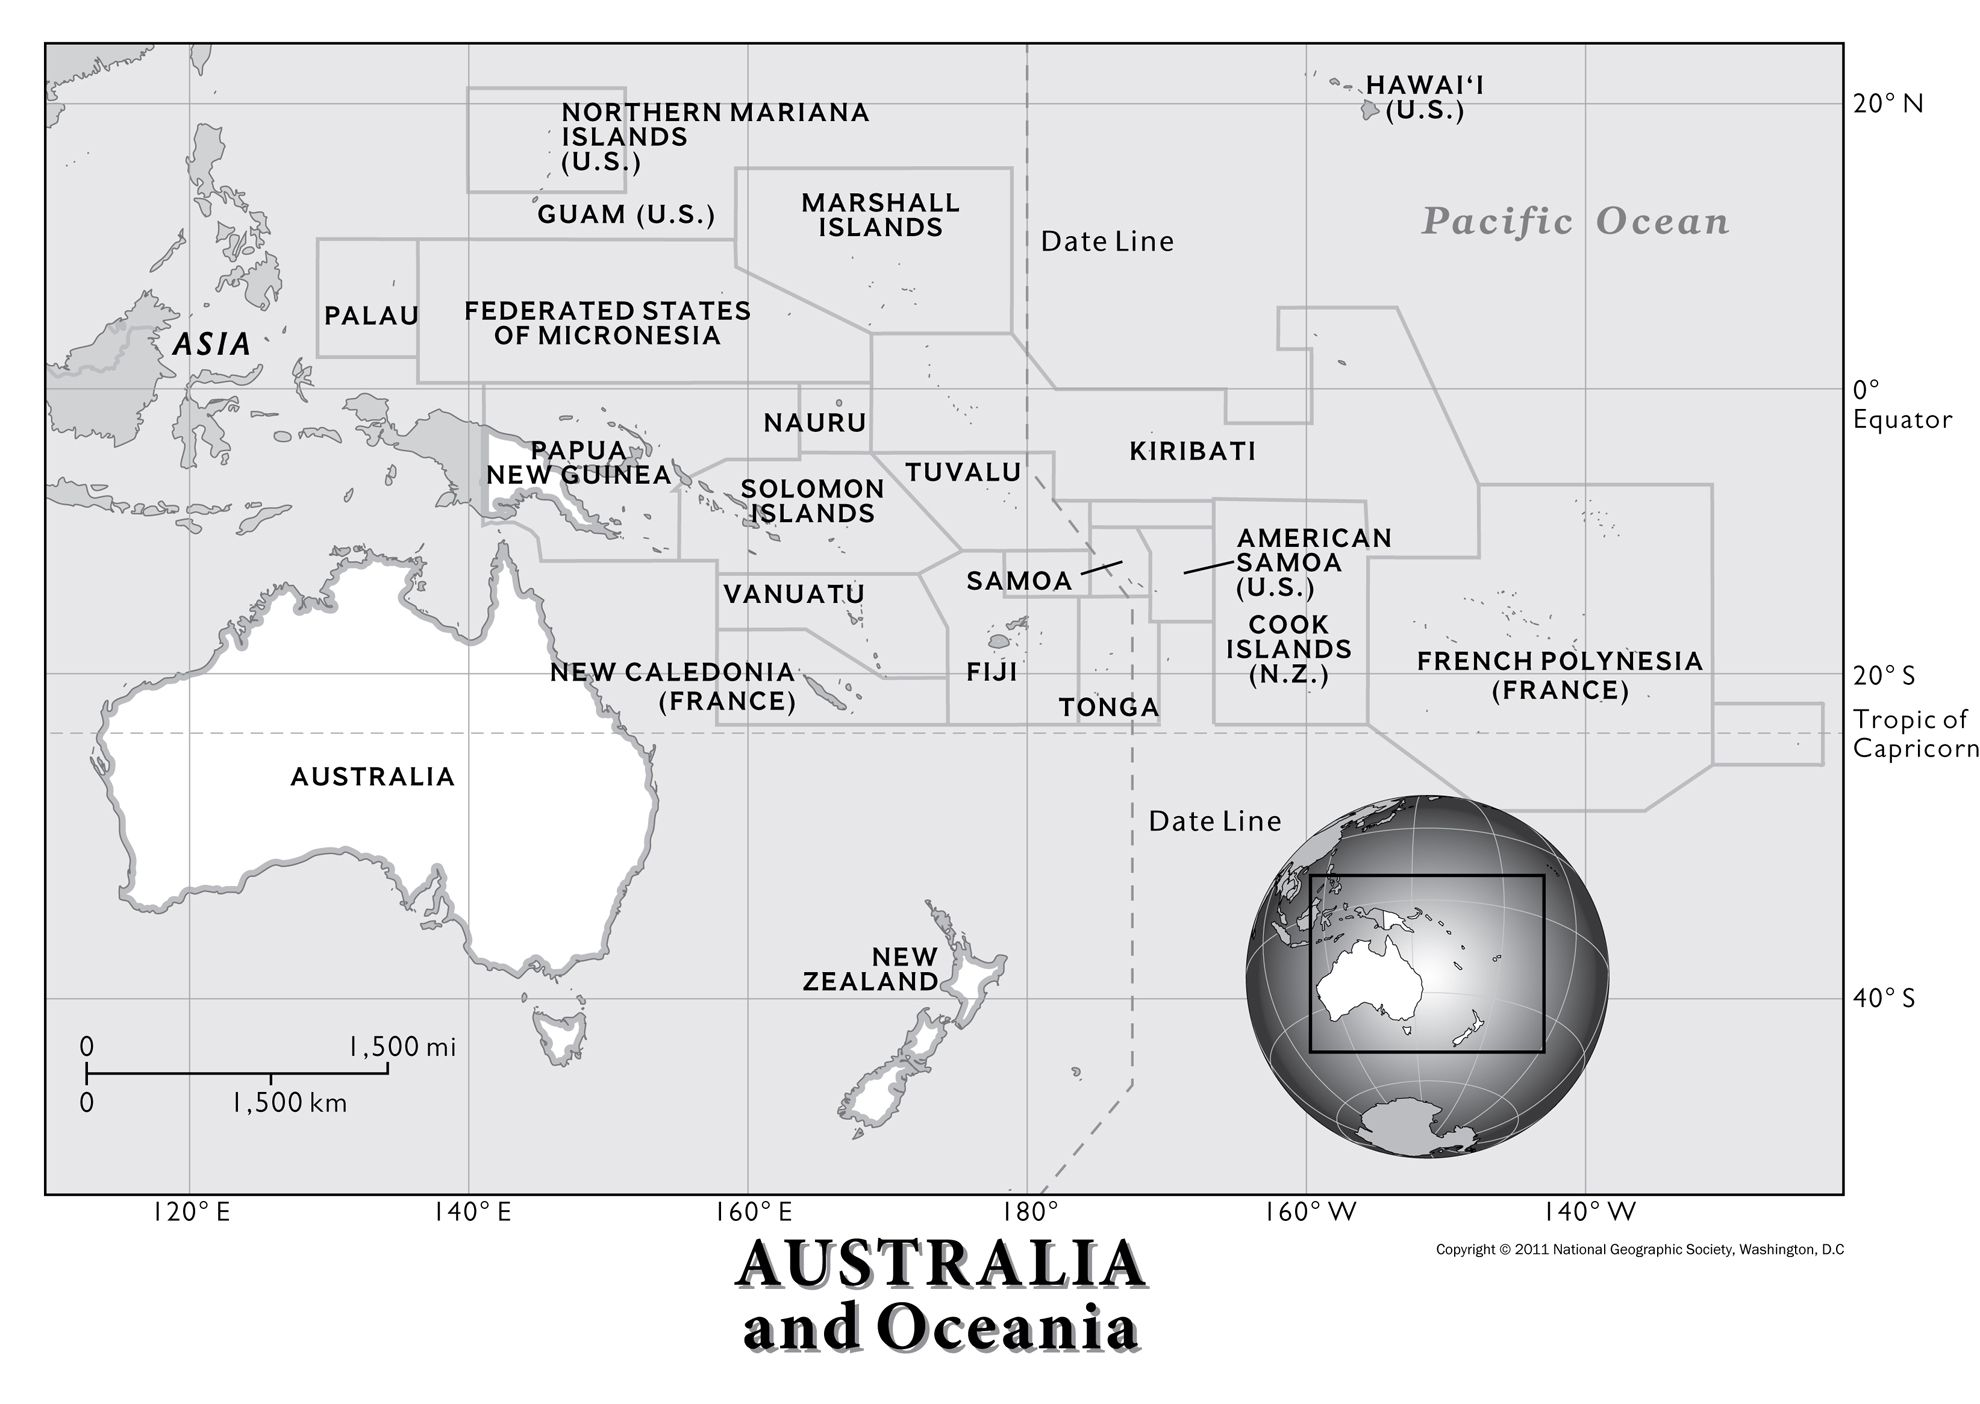 Australia and Oceania: Physical Geography | National ... on victoria state australia map, great artesian basin australia map, tasman sea australia map, kimberley australia map, deserts in australia map, barkly tableland australia map, western plateau australia map, lakes in australia map, melbourne australia on map, swan valley australia map, aboriginal australia map, gibson desert australia map, kalgoorlie australia map, tasmania australia map, tanami desert australia map, murray river australia map, australia landforms map, albany australia map, canberra australia map, south west australia map,